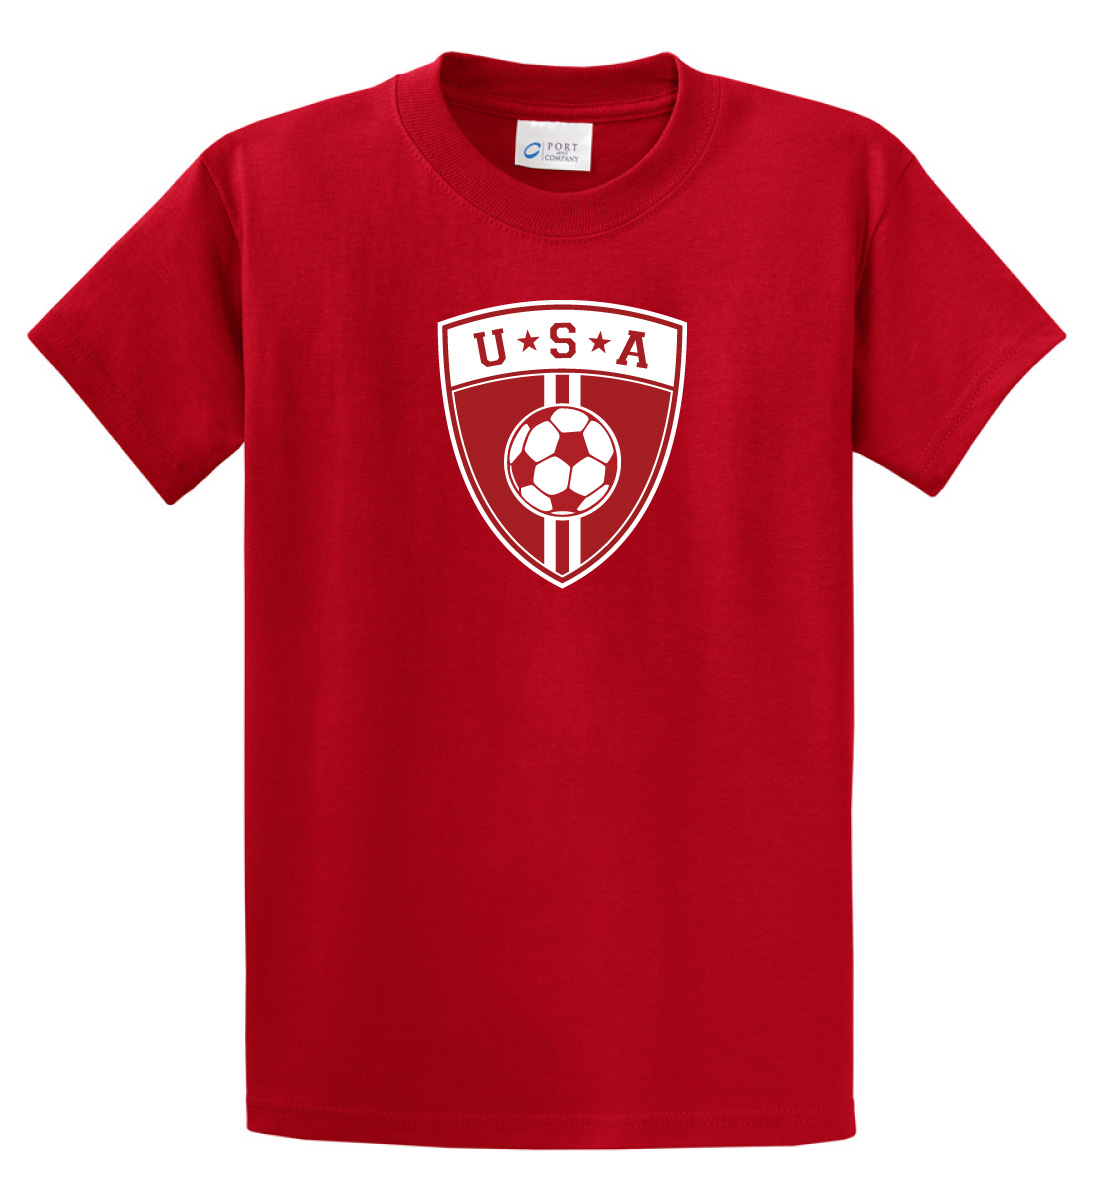 USA soccer T-shirt in red for youths and adults, by Code Four Athletics